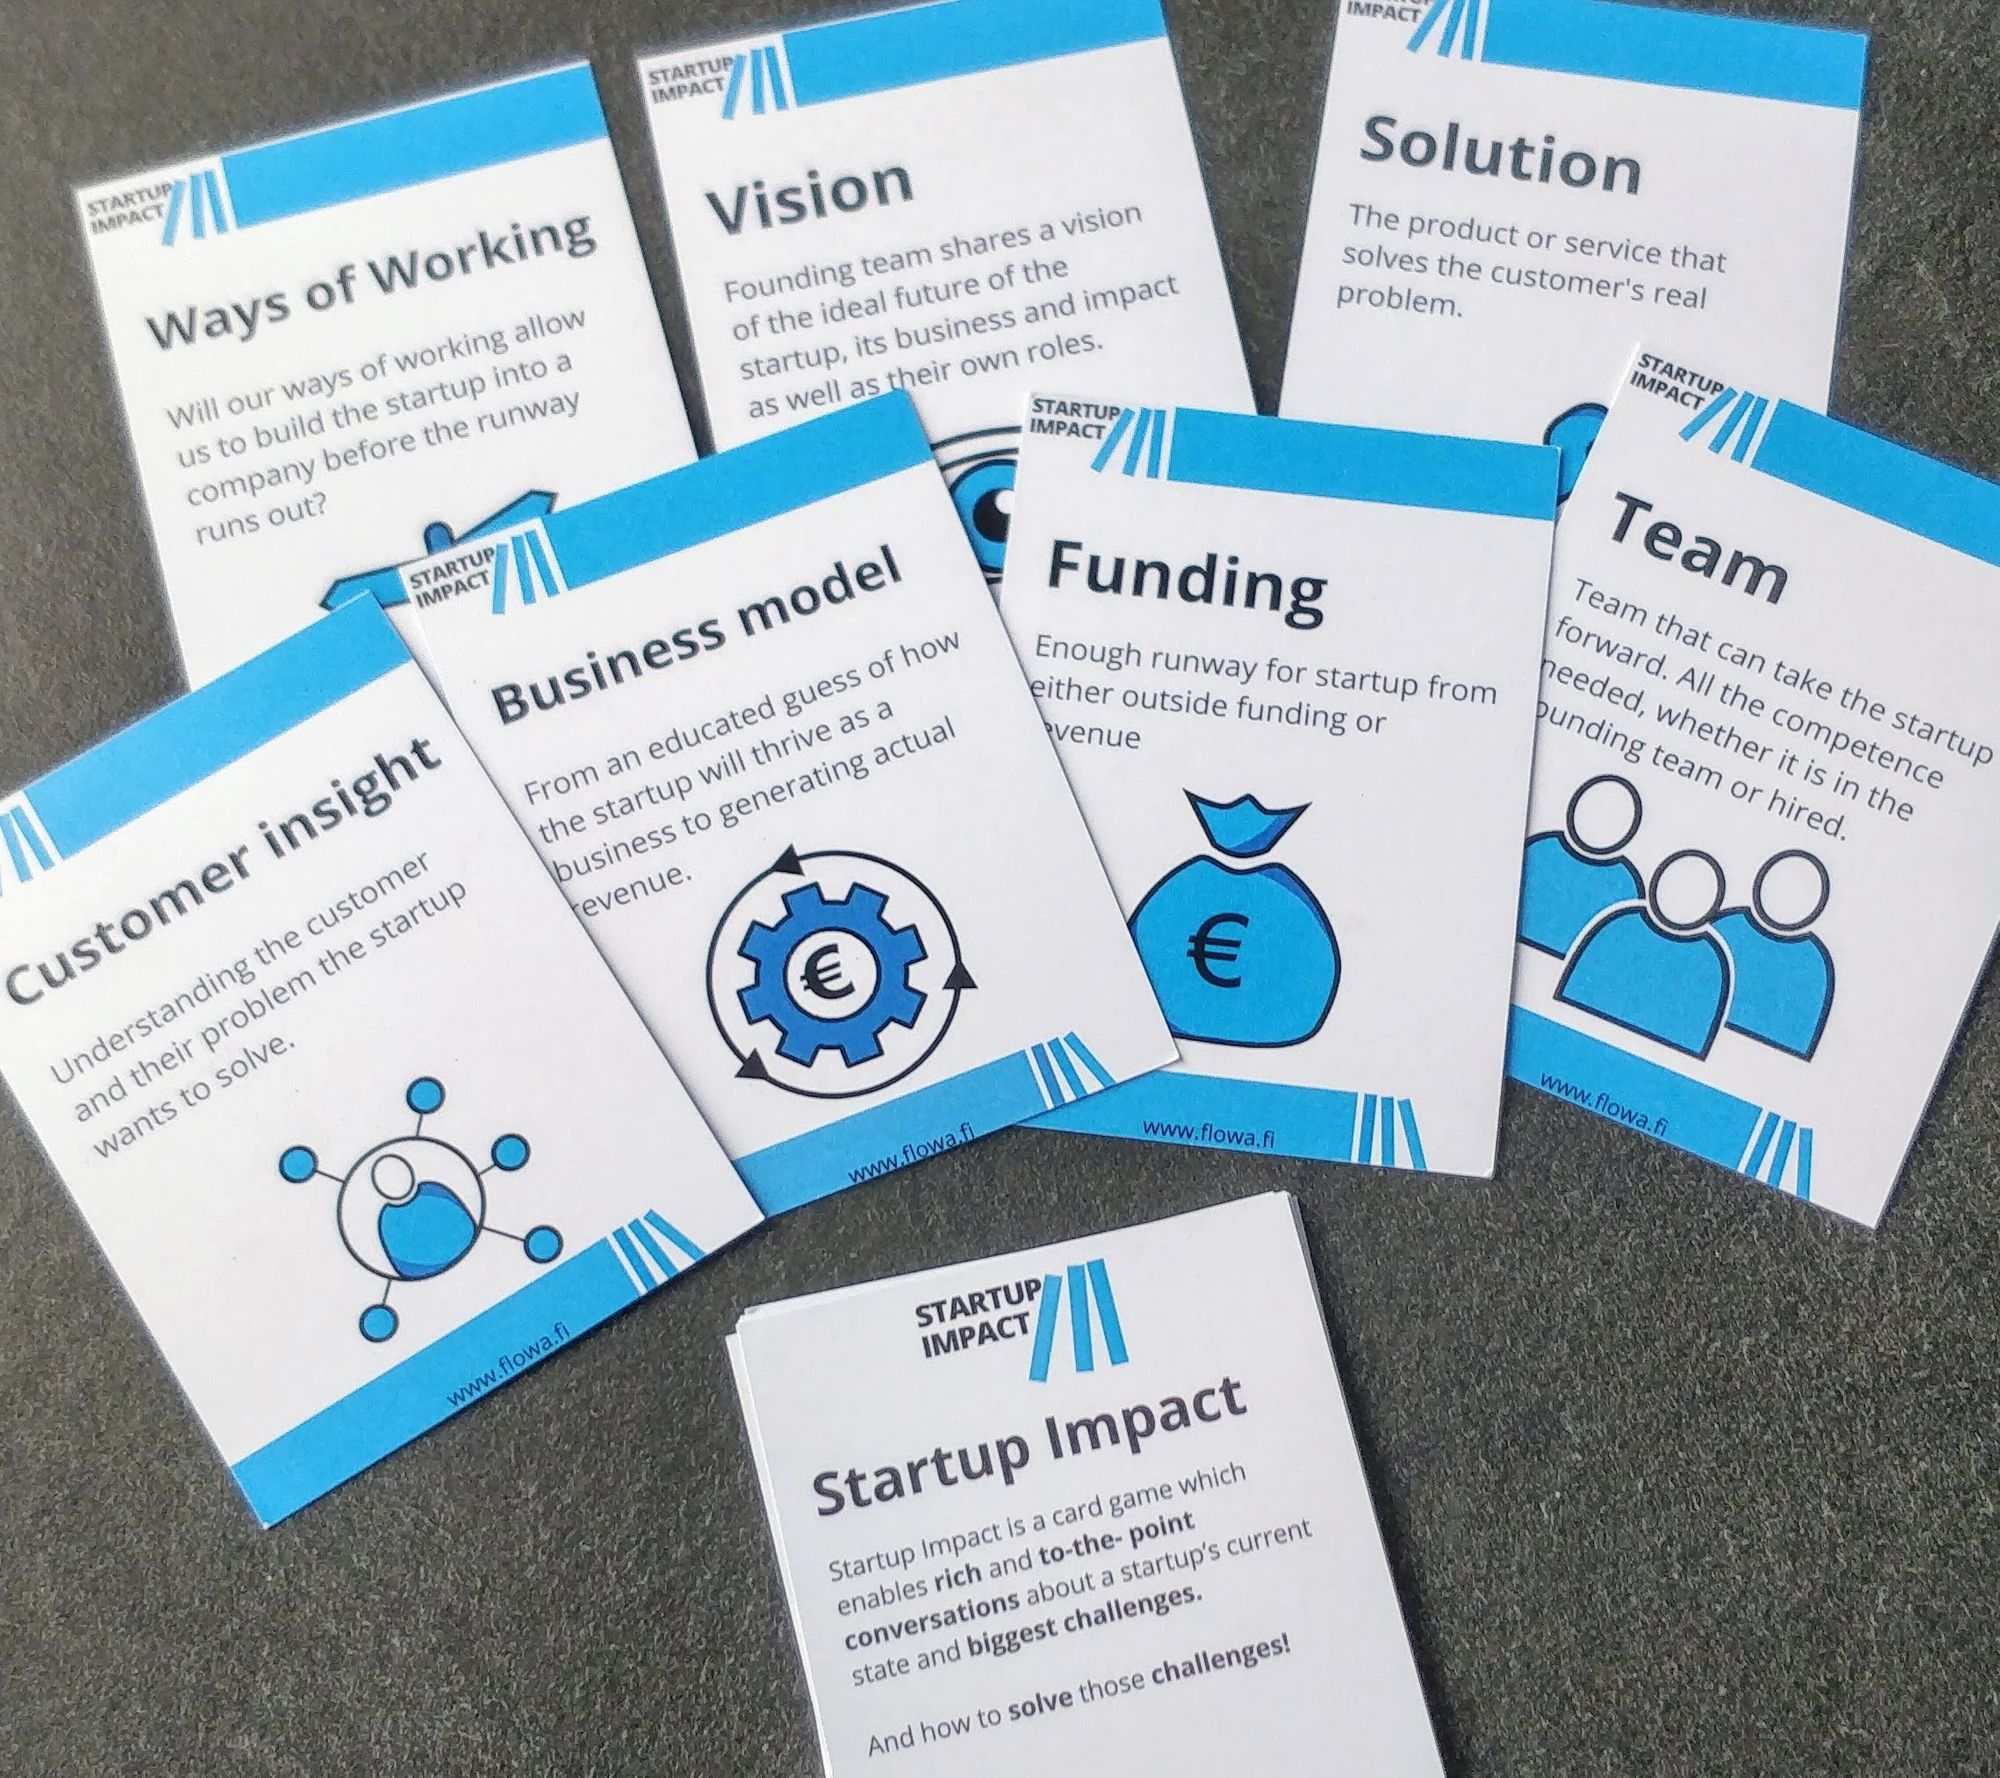 Photo of the Startup Impact cards